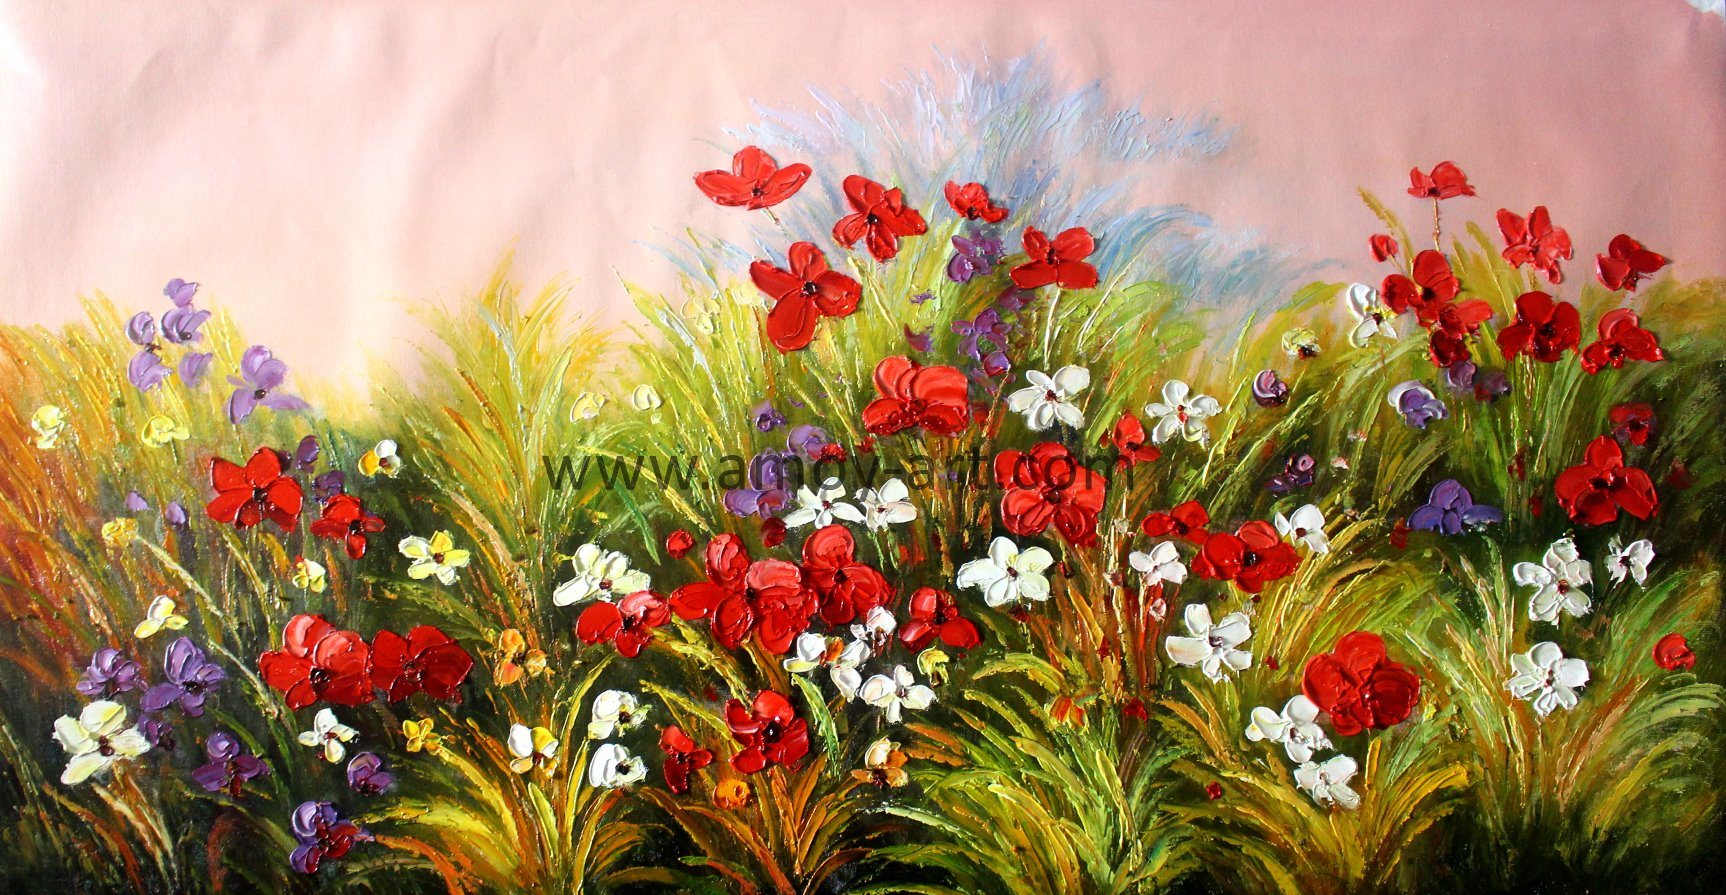 China Large Handpainted Red Flower Field Oil Paintings For Wall Decor China Canvas Oil Paintings And Wall Art Price